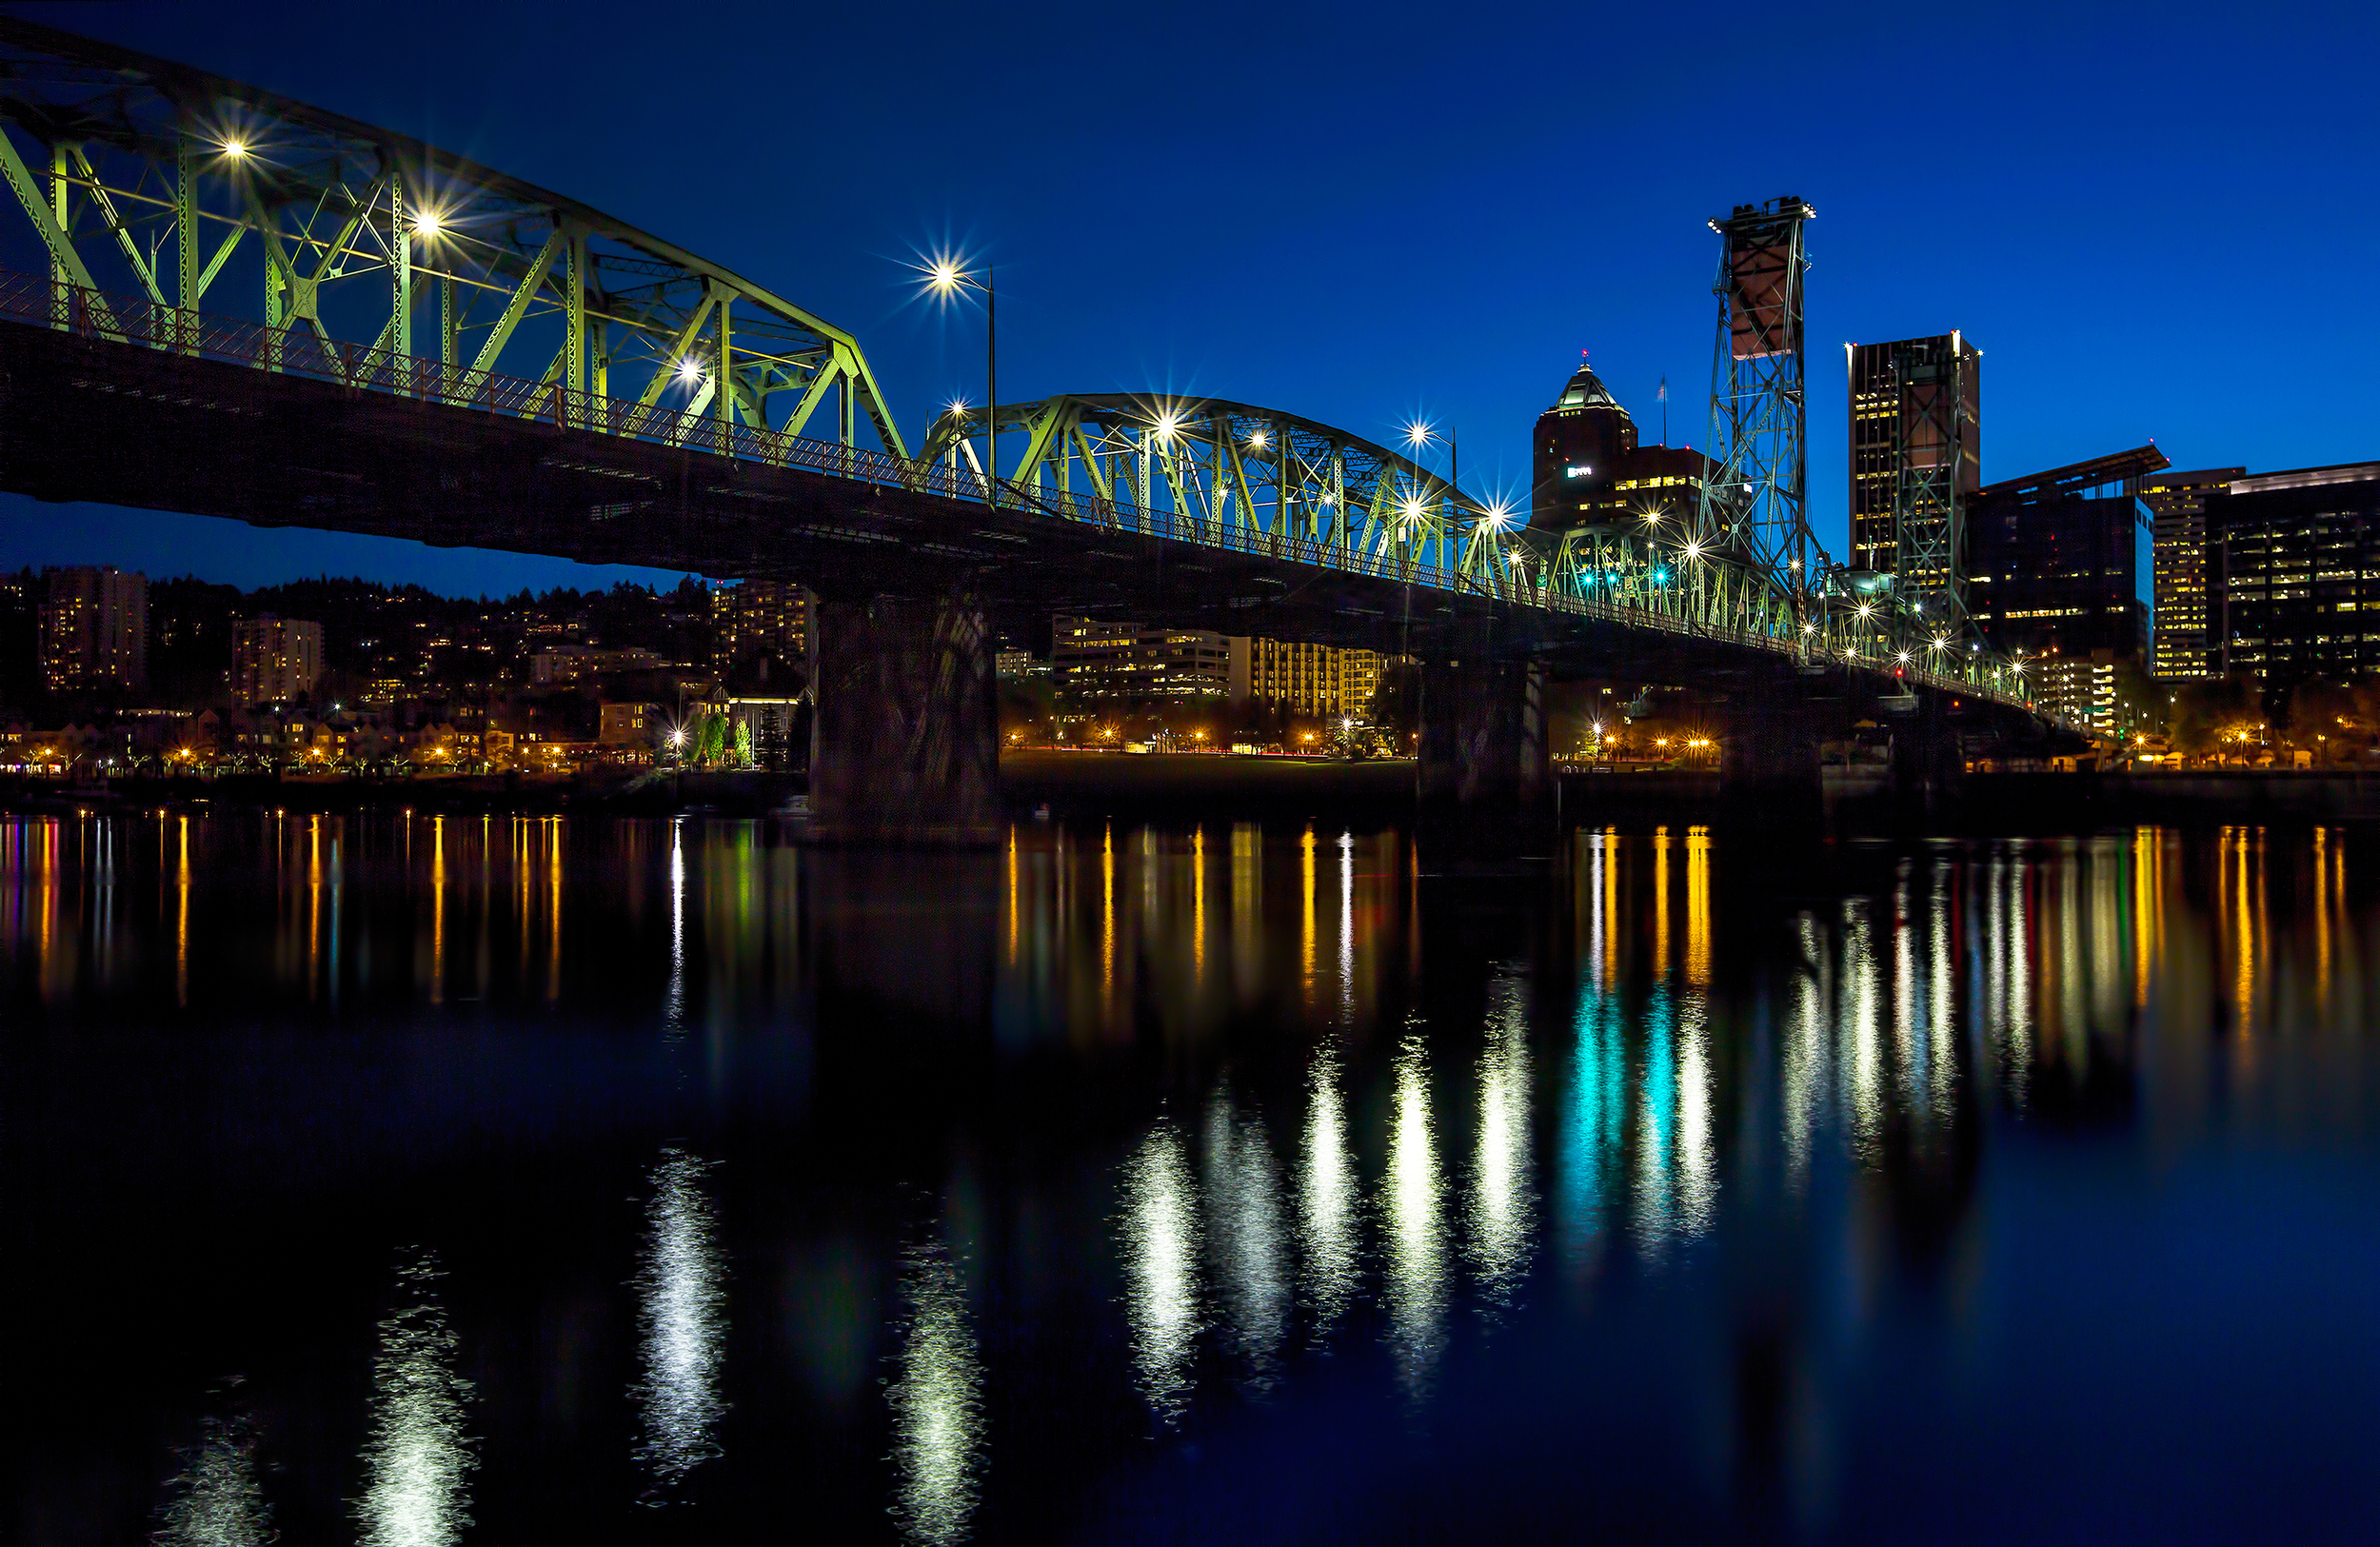 Bridge-Over-Untroubled-Waters-for-Show.jpg